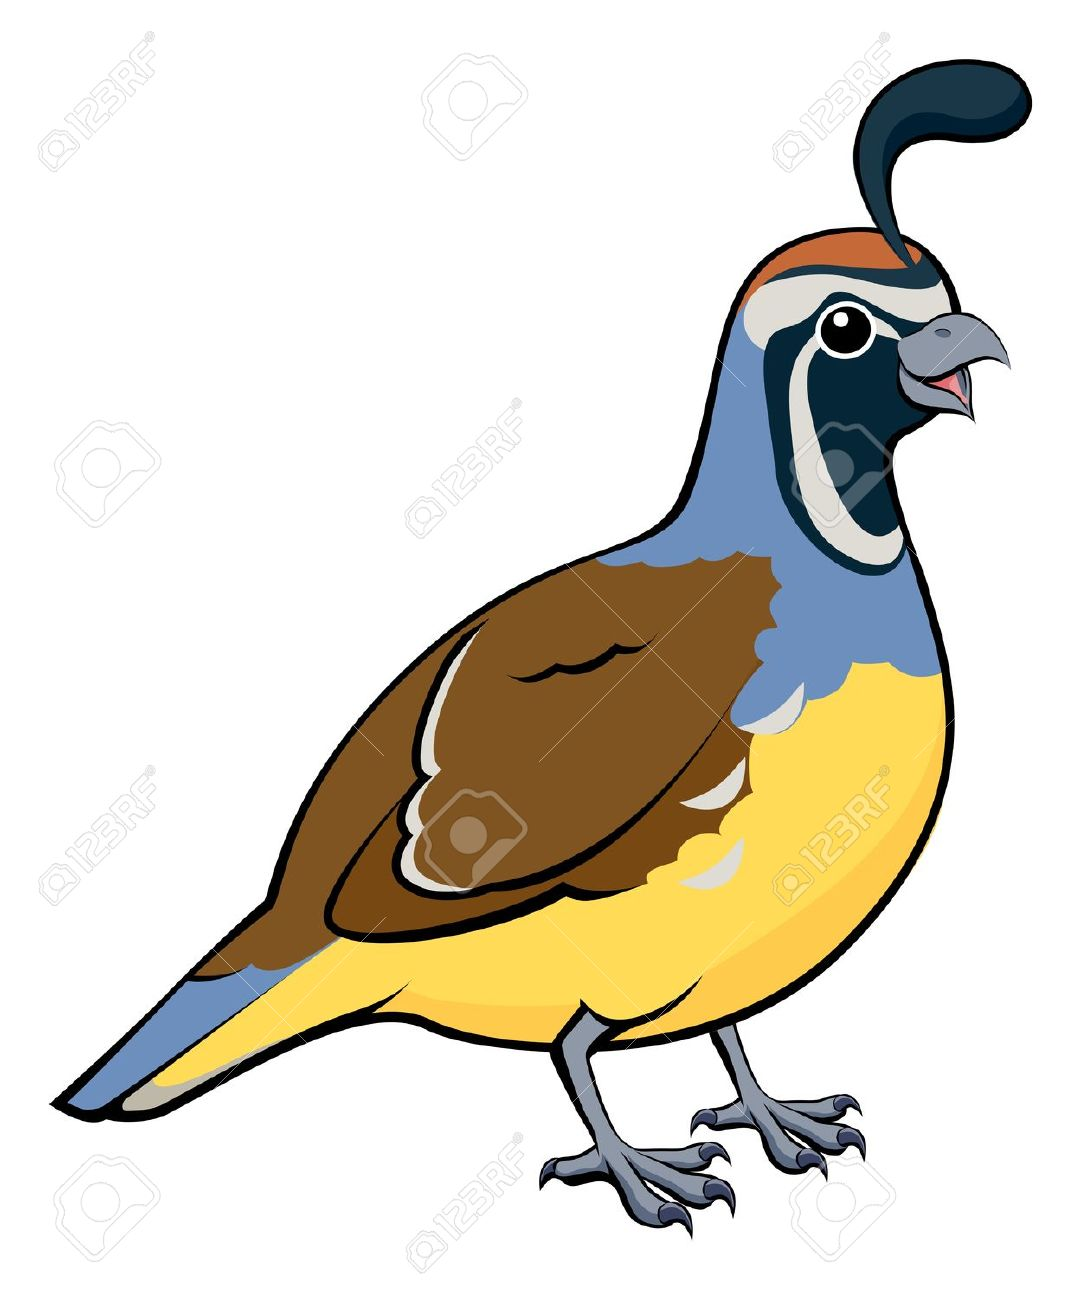 Quail clipart #13, Download drawings